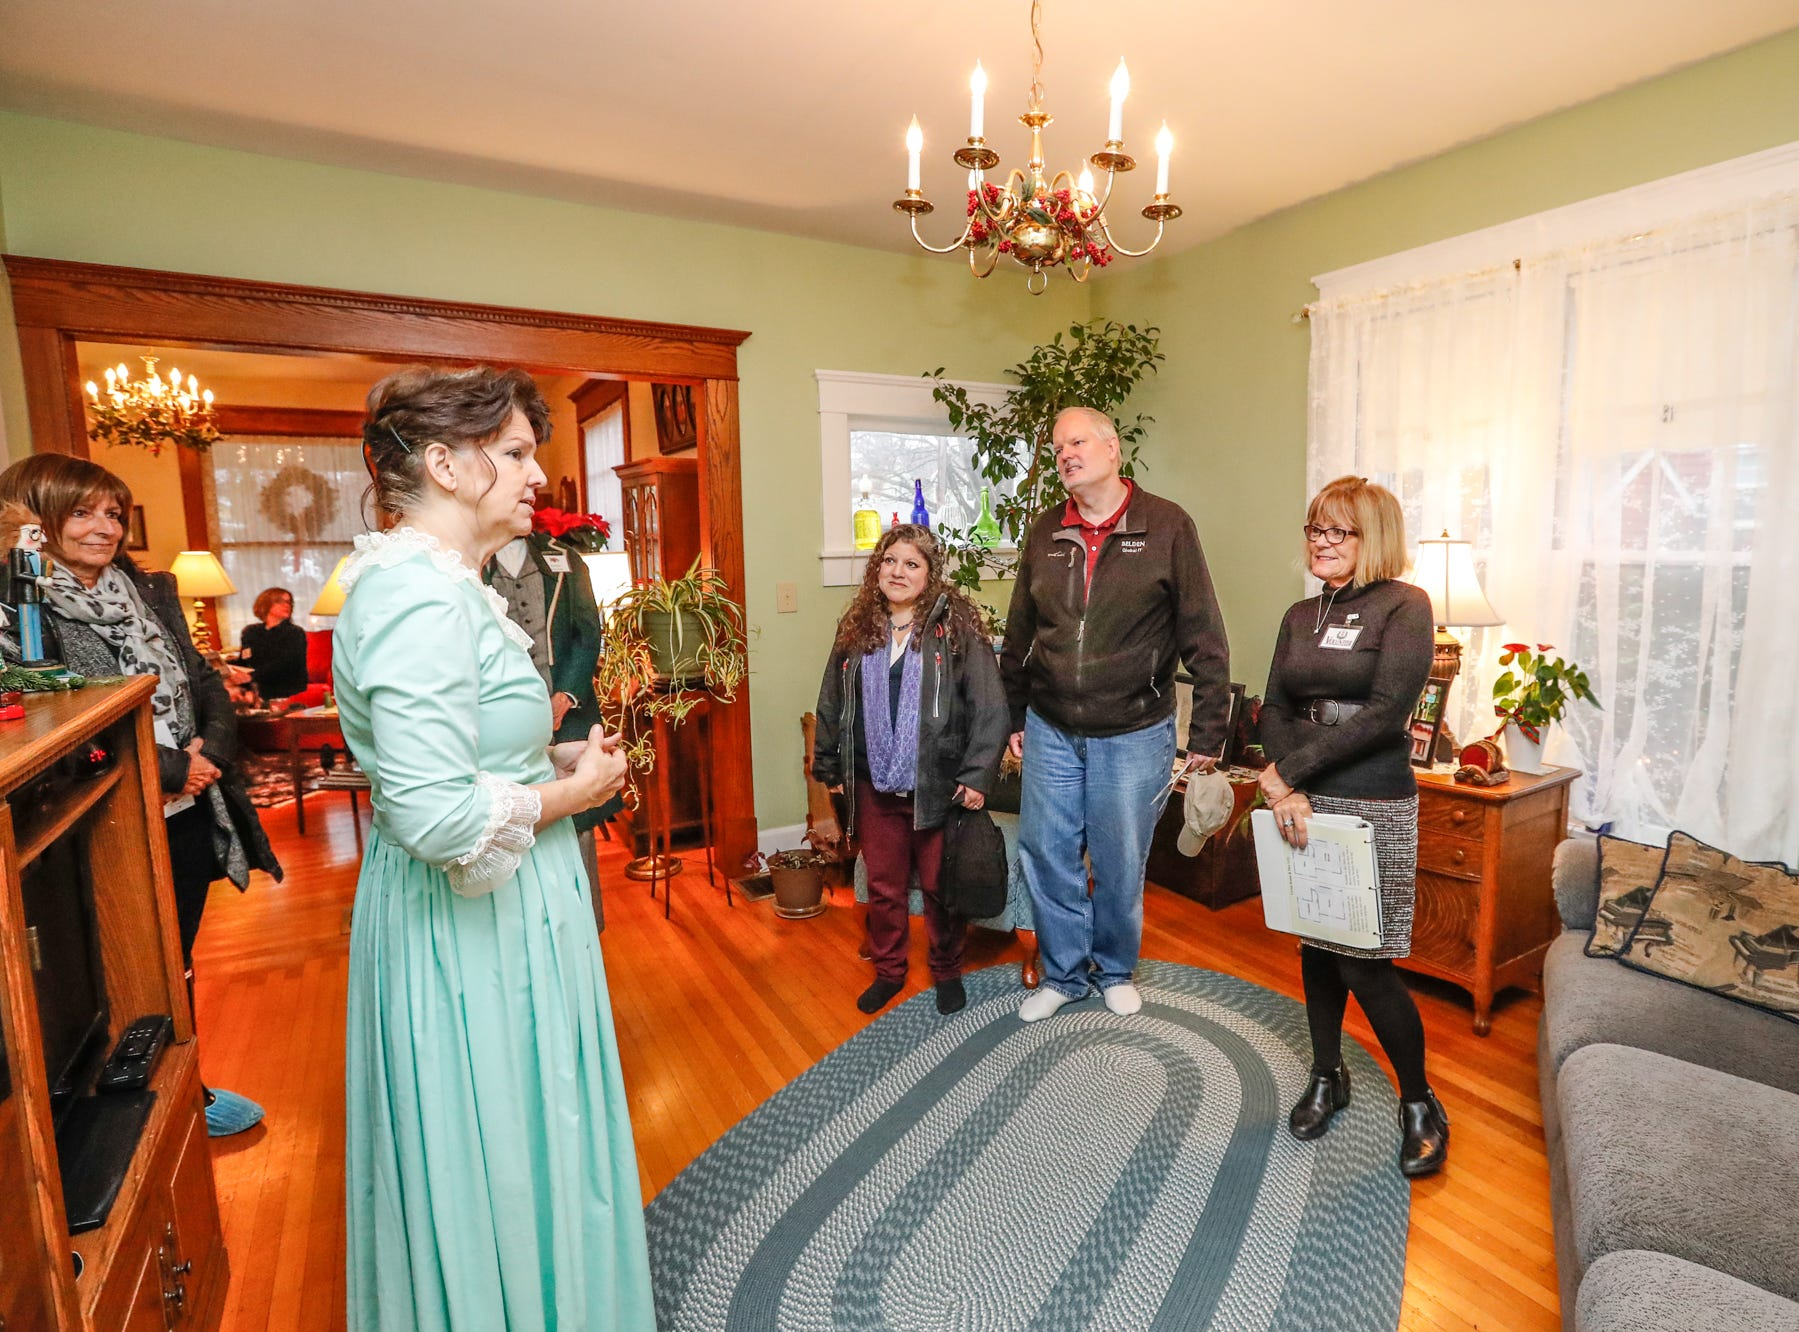 Ruth Schwartz, center left, wears the dress she sewed for her period wedding while speaking to guests during the Carmel Clay Historical Society Holiday Home Tour of her 1903 home in Carmel Ind. on Saturday, Dec.1, 2018.